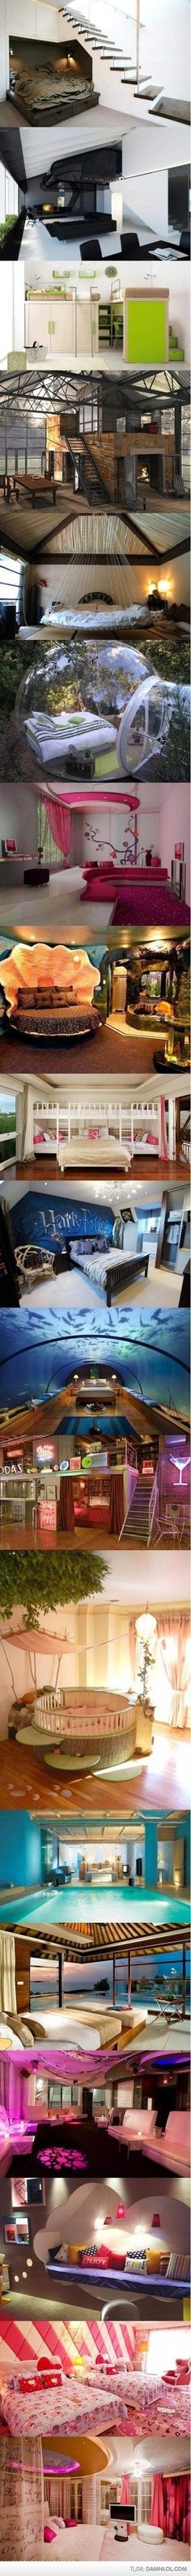 Some of these rooms are incredible